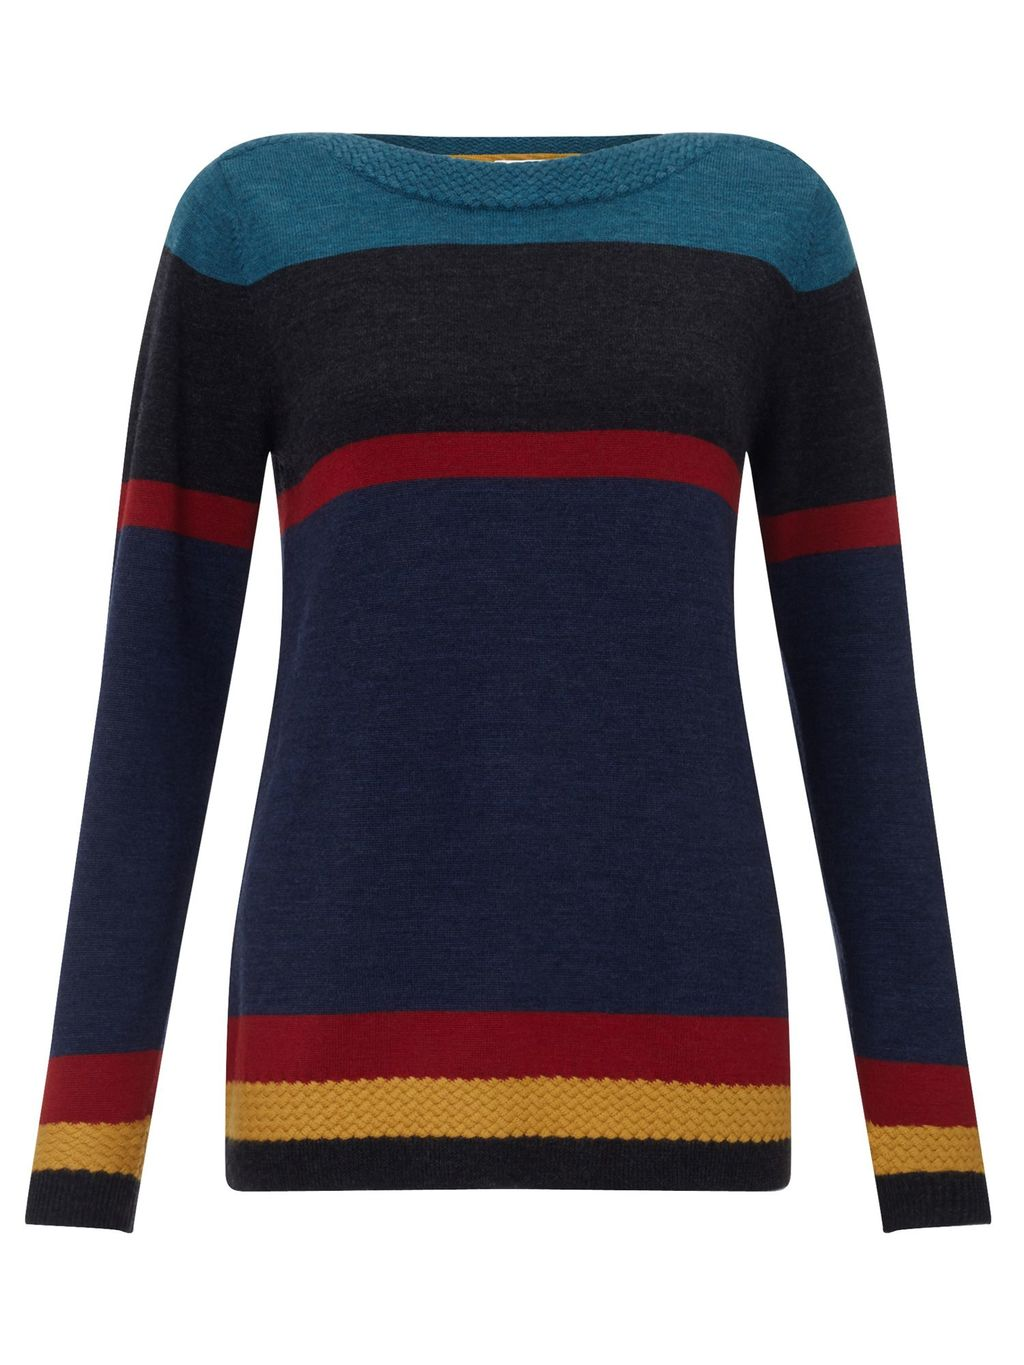 Stripe Merino Jumper, Multi Coloured - pattern: horizontal stripes; style: standard; secondary colour: true red; predominant colour: navy; occasions: casual; length: standard; fibres: wool - 100%; fit: slim fit; neckline: crew; sleeve length: long sleeve; sleeve style: standard; texture group: knits/crochet; pattern type: knitted - fine stitch; multicoloured: multicoloured; season: s/s 2016; wardrobe: highlight